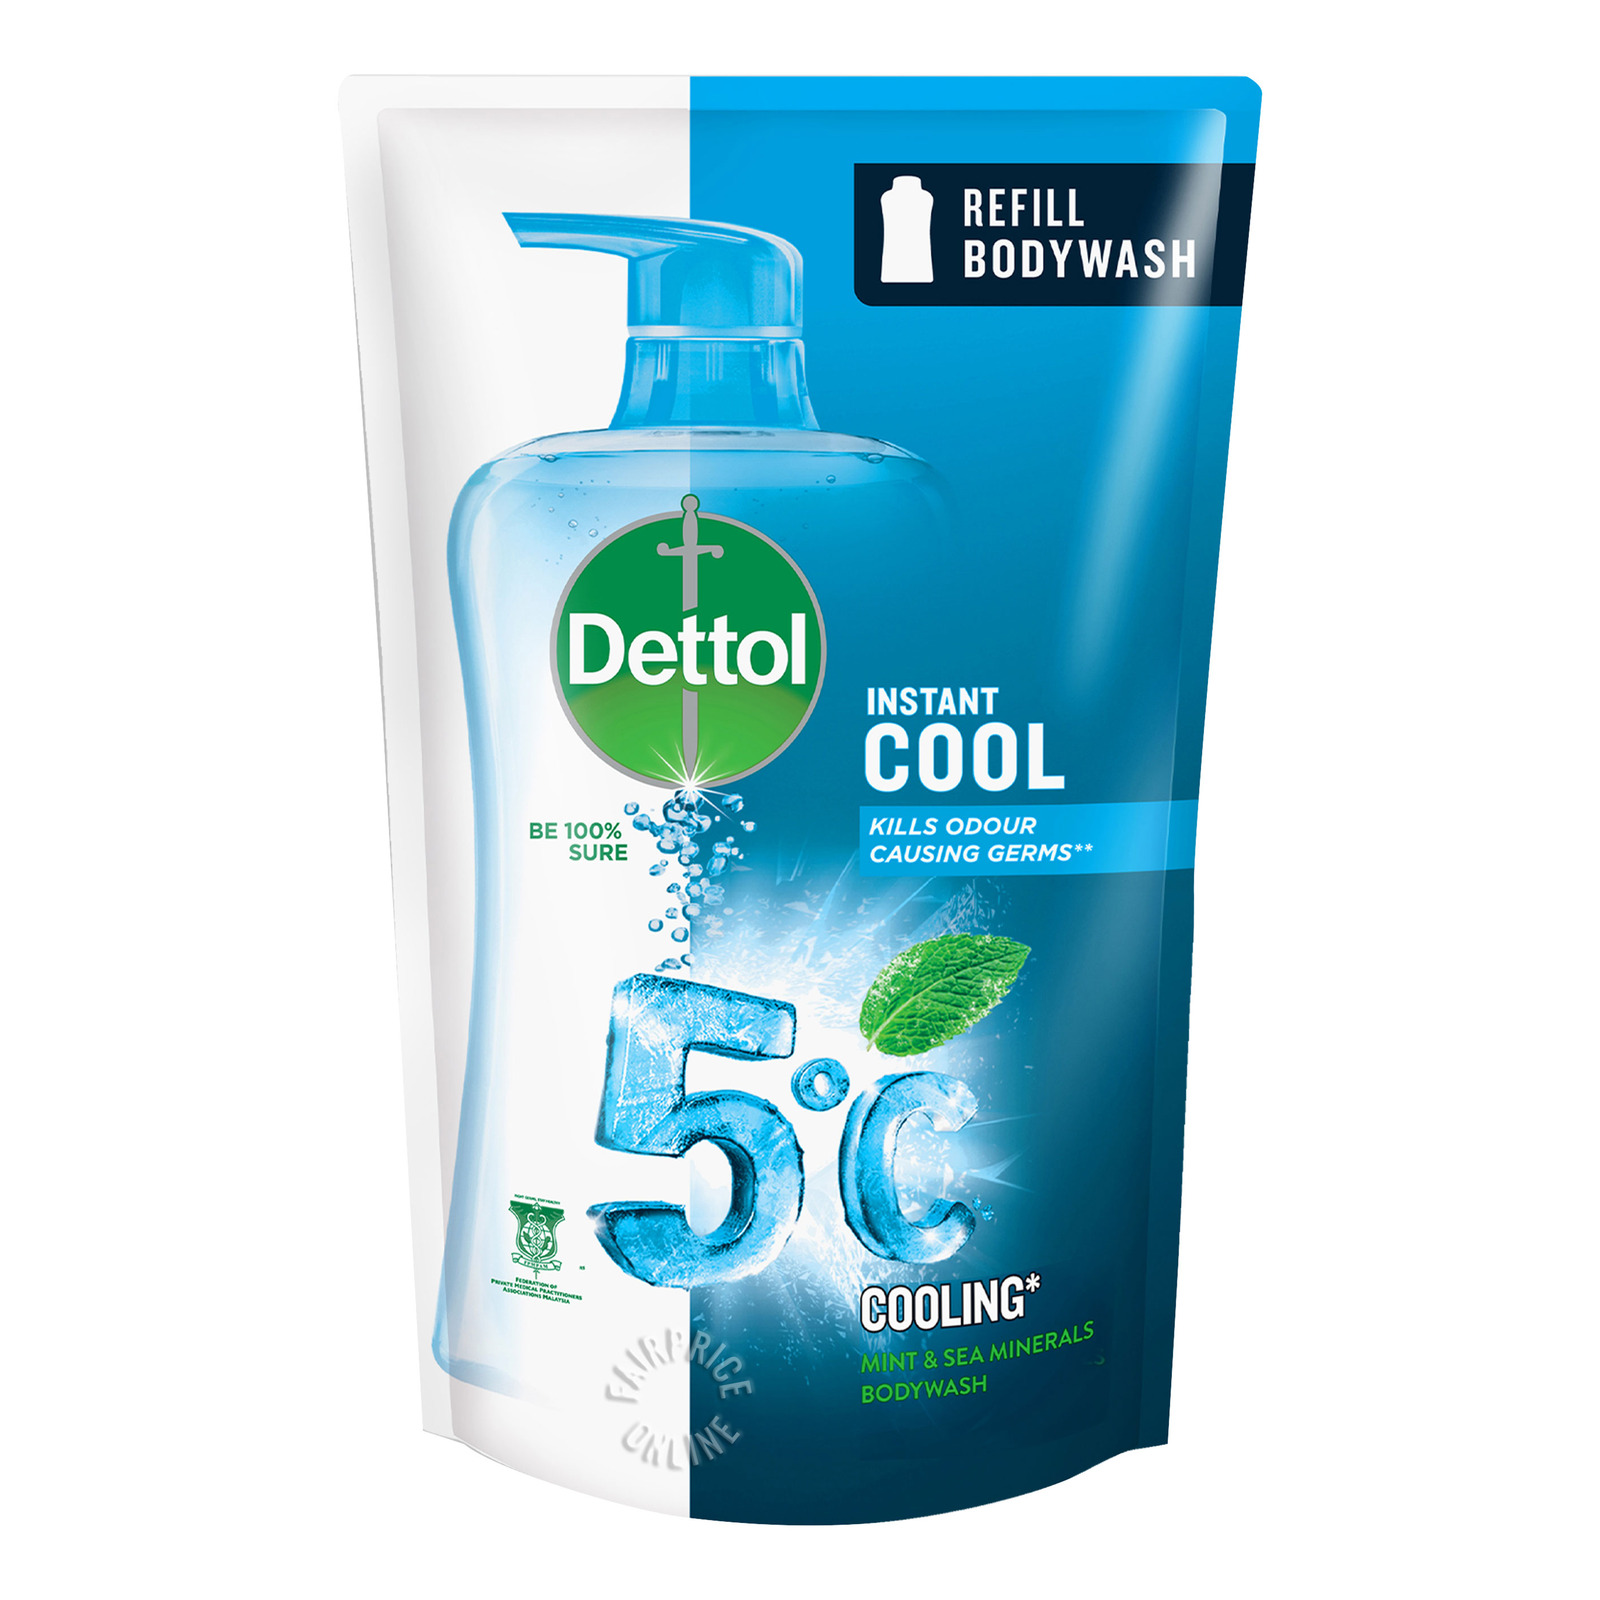 Dettol Anti-Baterial pH-Balanced Body Wash Refill - Cool